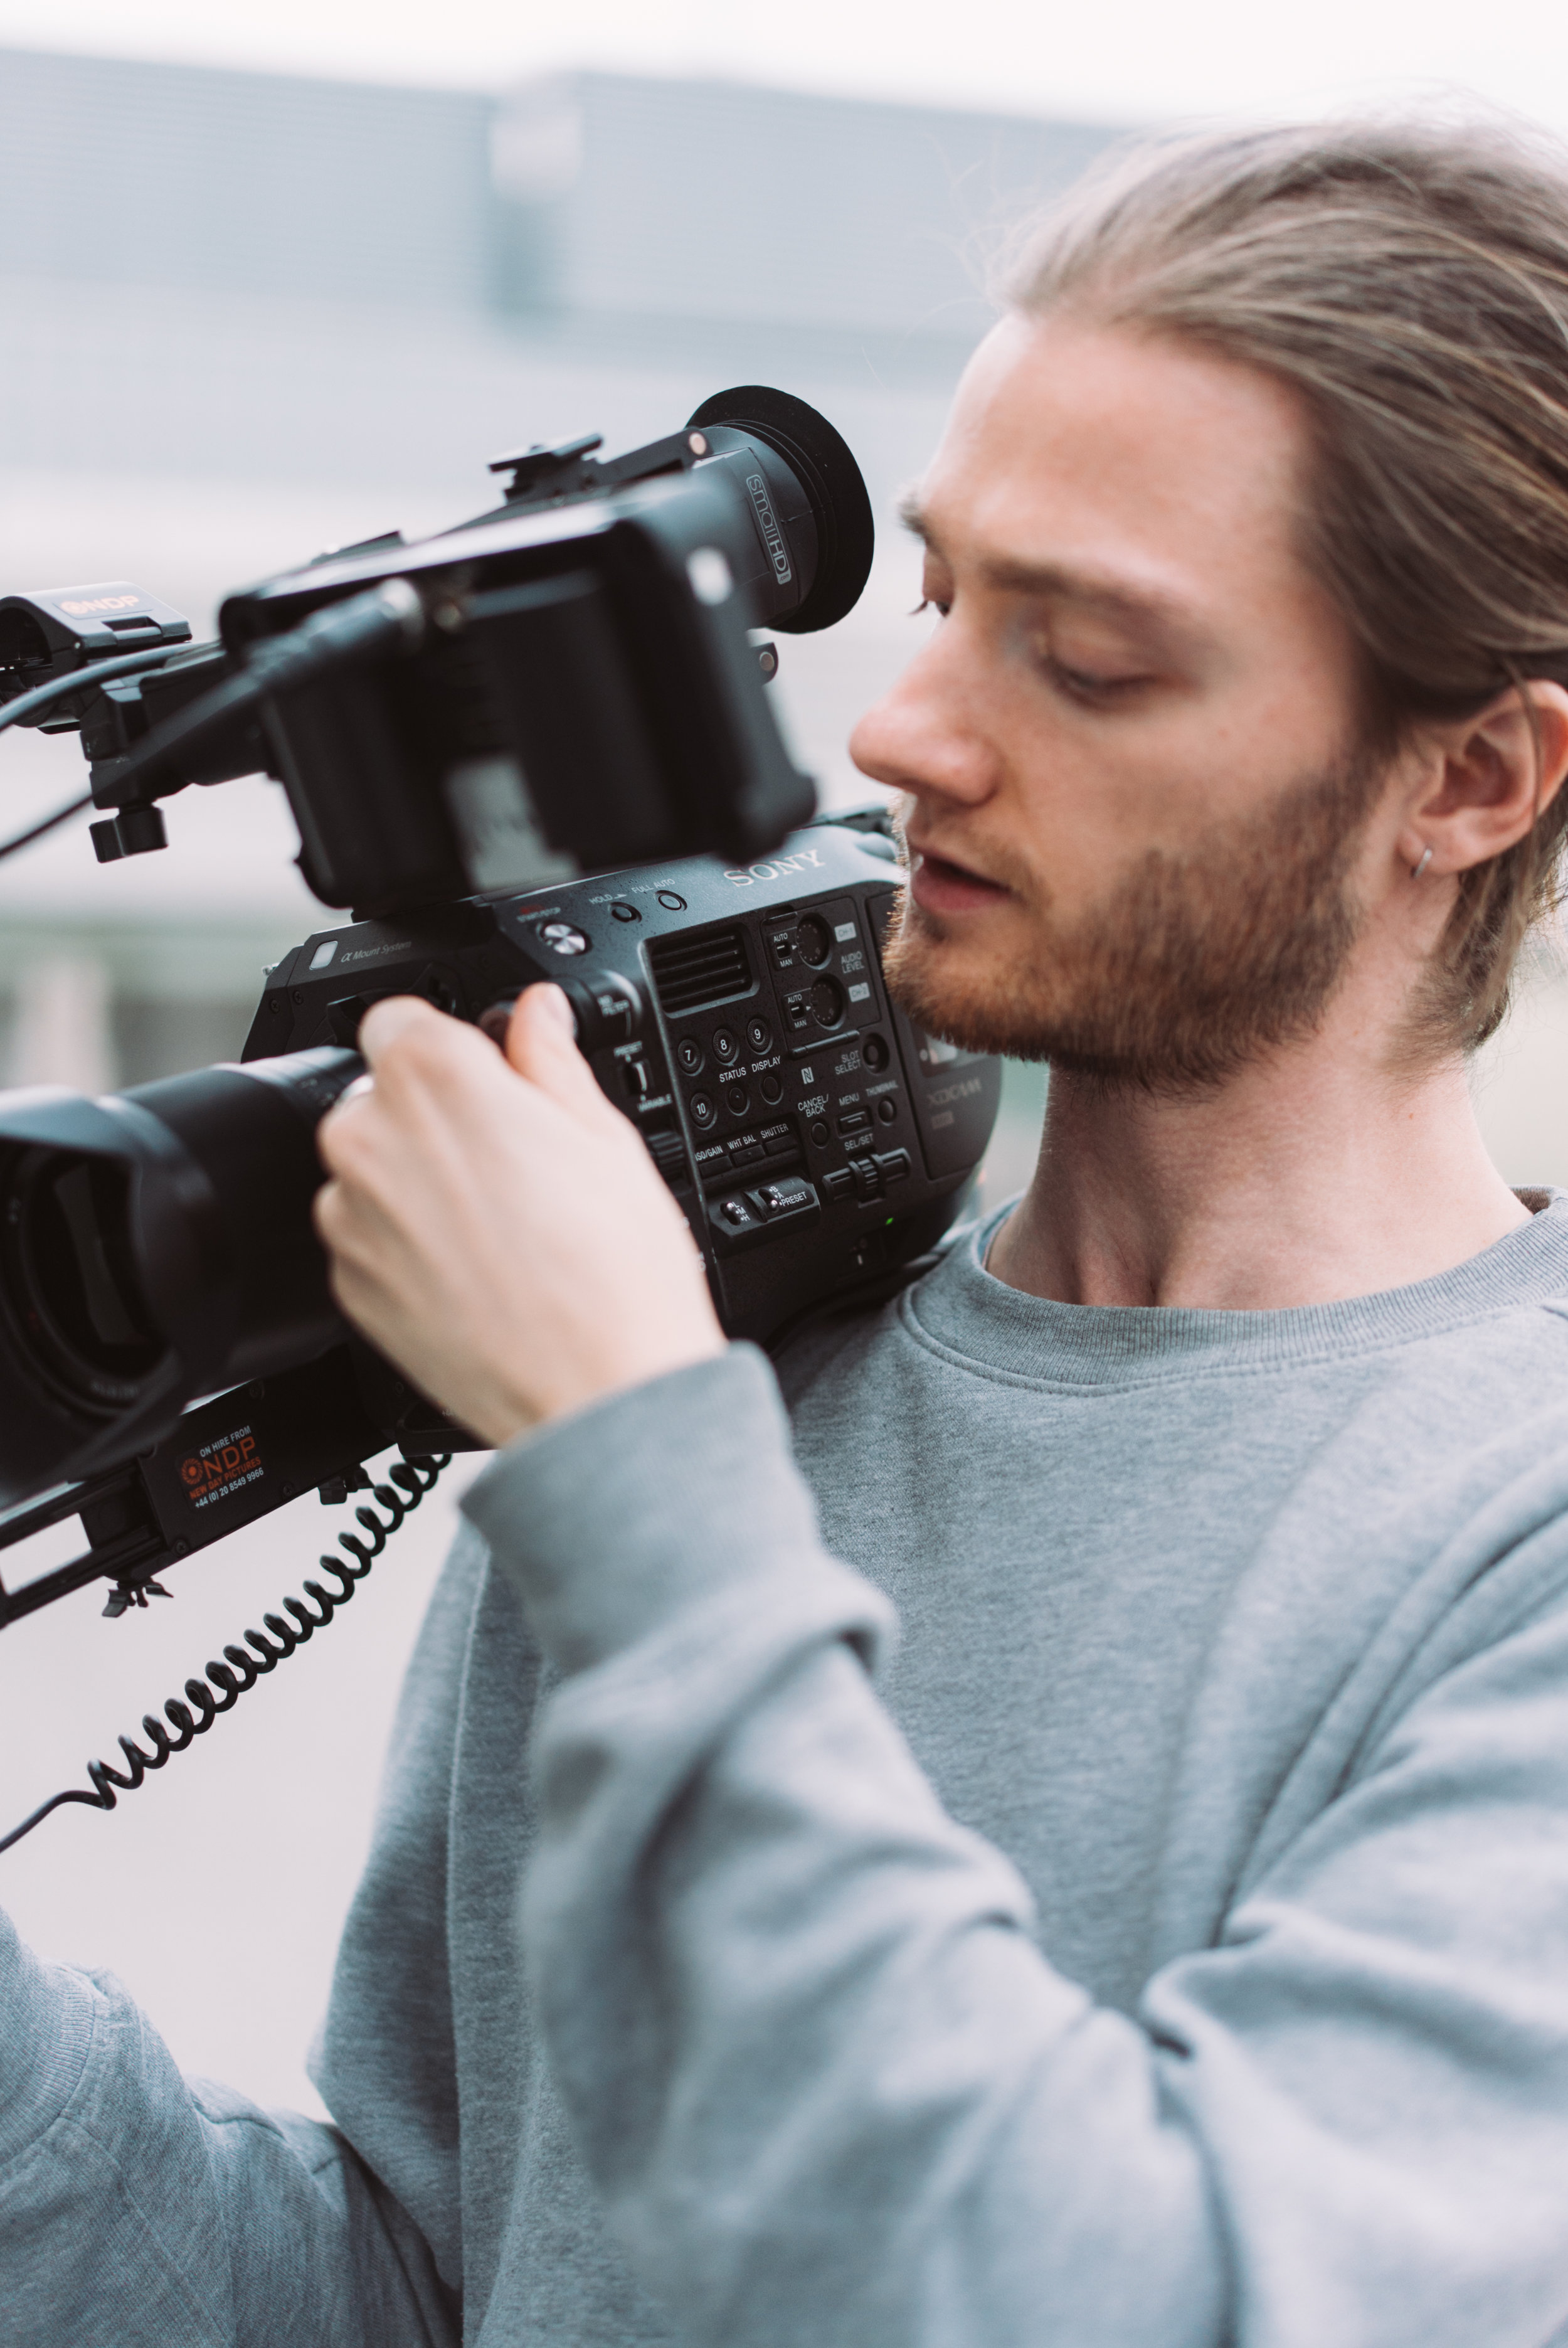 Max Anstruther - %22Come%22 - Music Video BTS - 27.01.18 (12 of 63).jpg